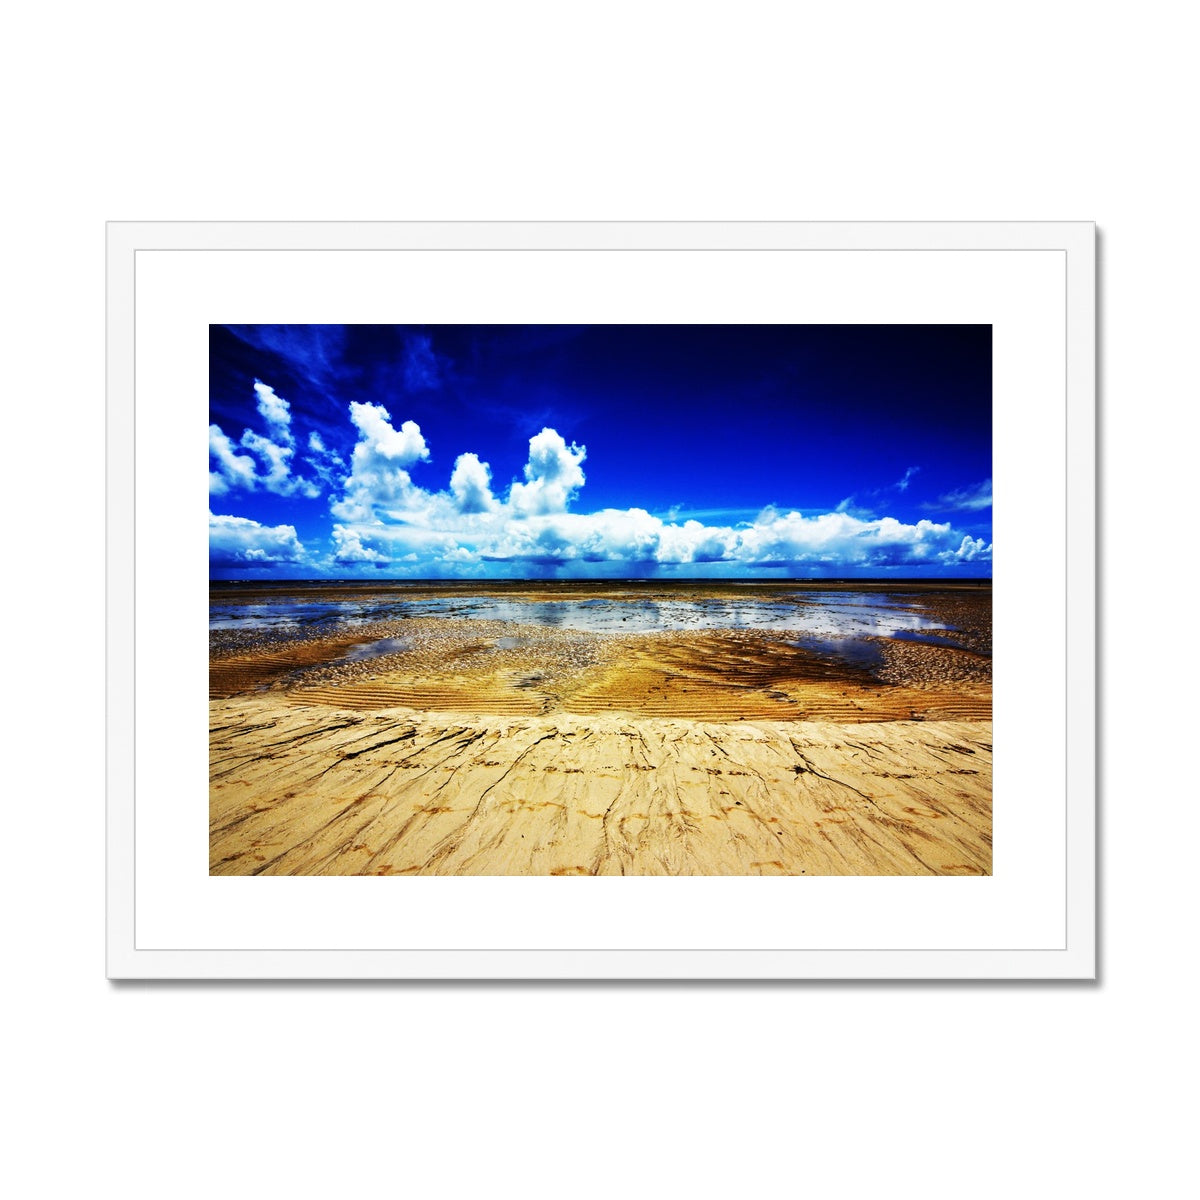 Bahia Electric Aqua Blue - Brasil Framed & Mounted Print